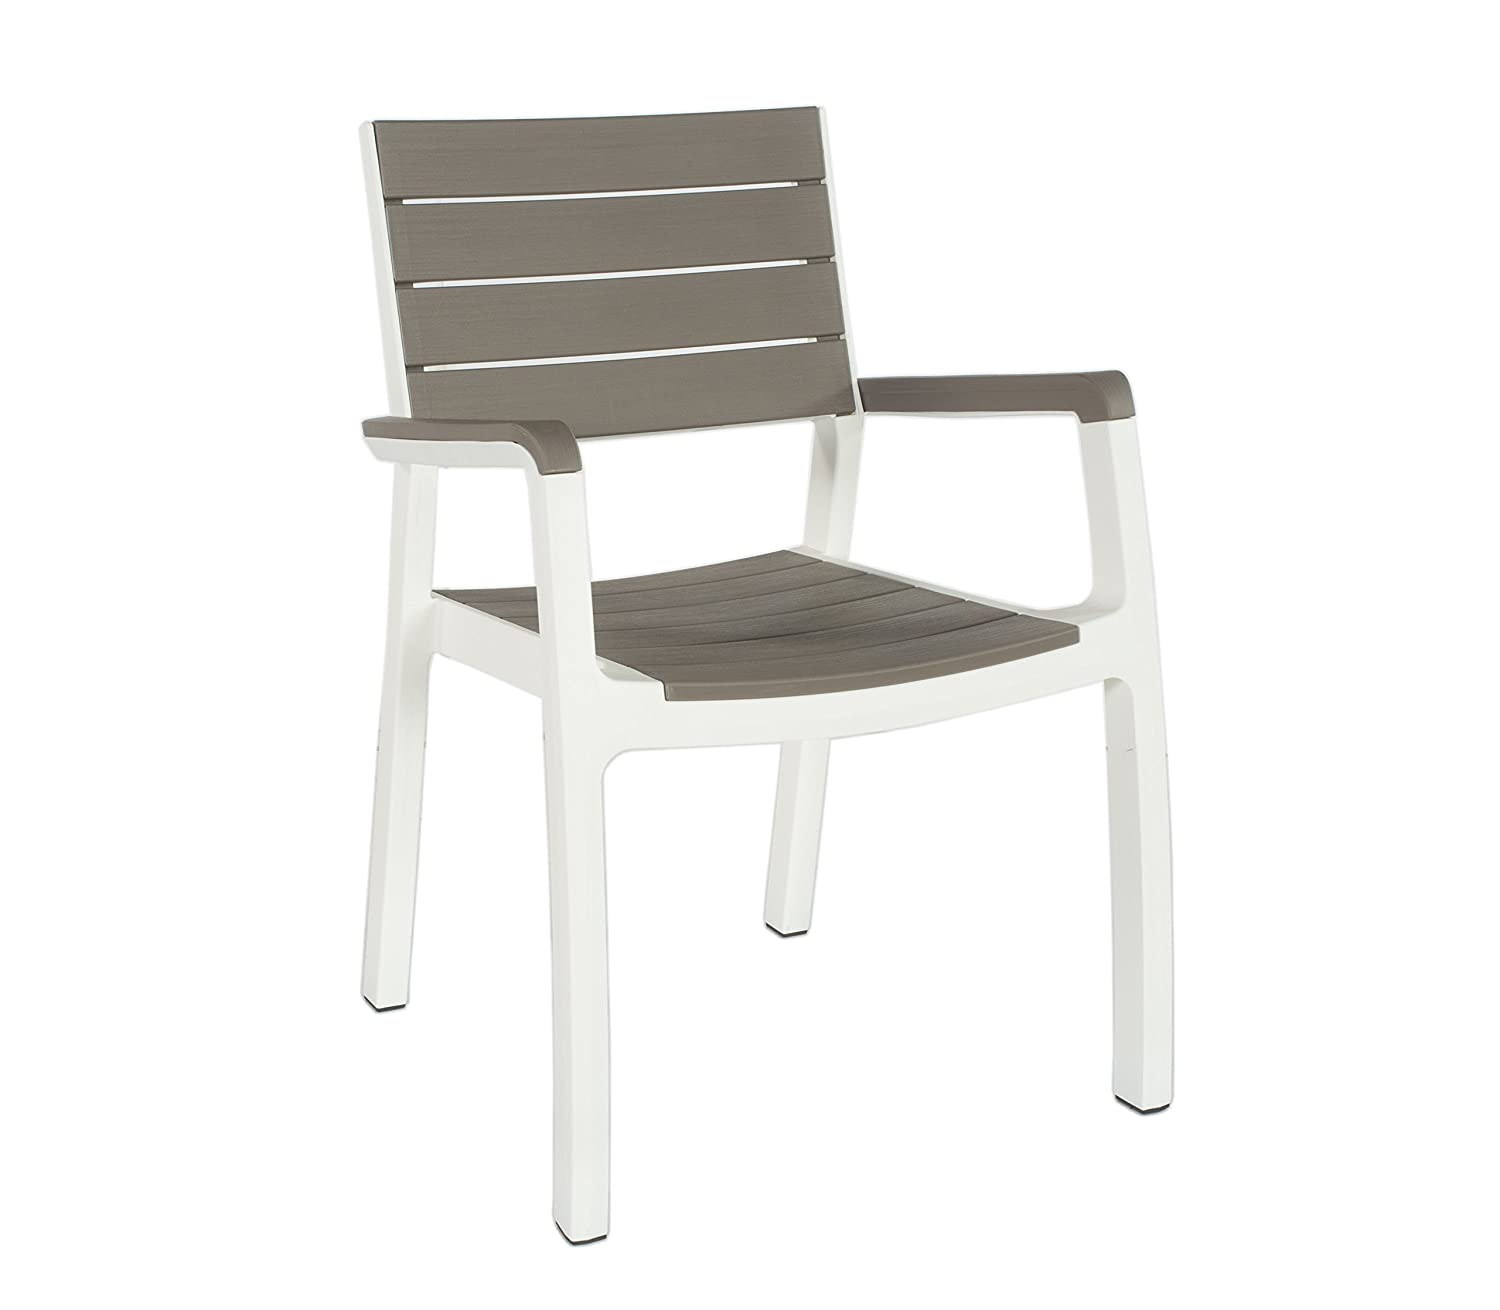 Stackable outdoor chairs lightweight peppermill interiors - Amazon Com Keter Harmony Indoor Outdoor Stackable Patio Furniture Armchair Set Modern Wood Style Finish Pack Of 2 Chairs Garden Outdoor